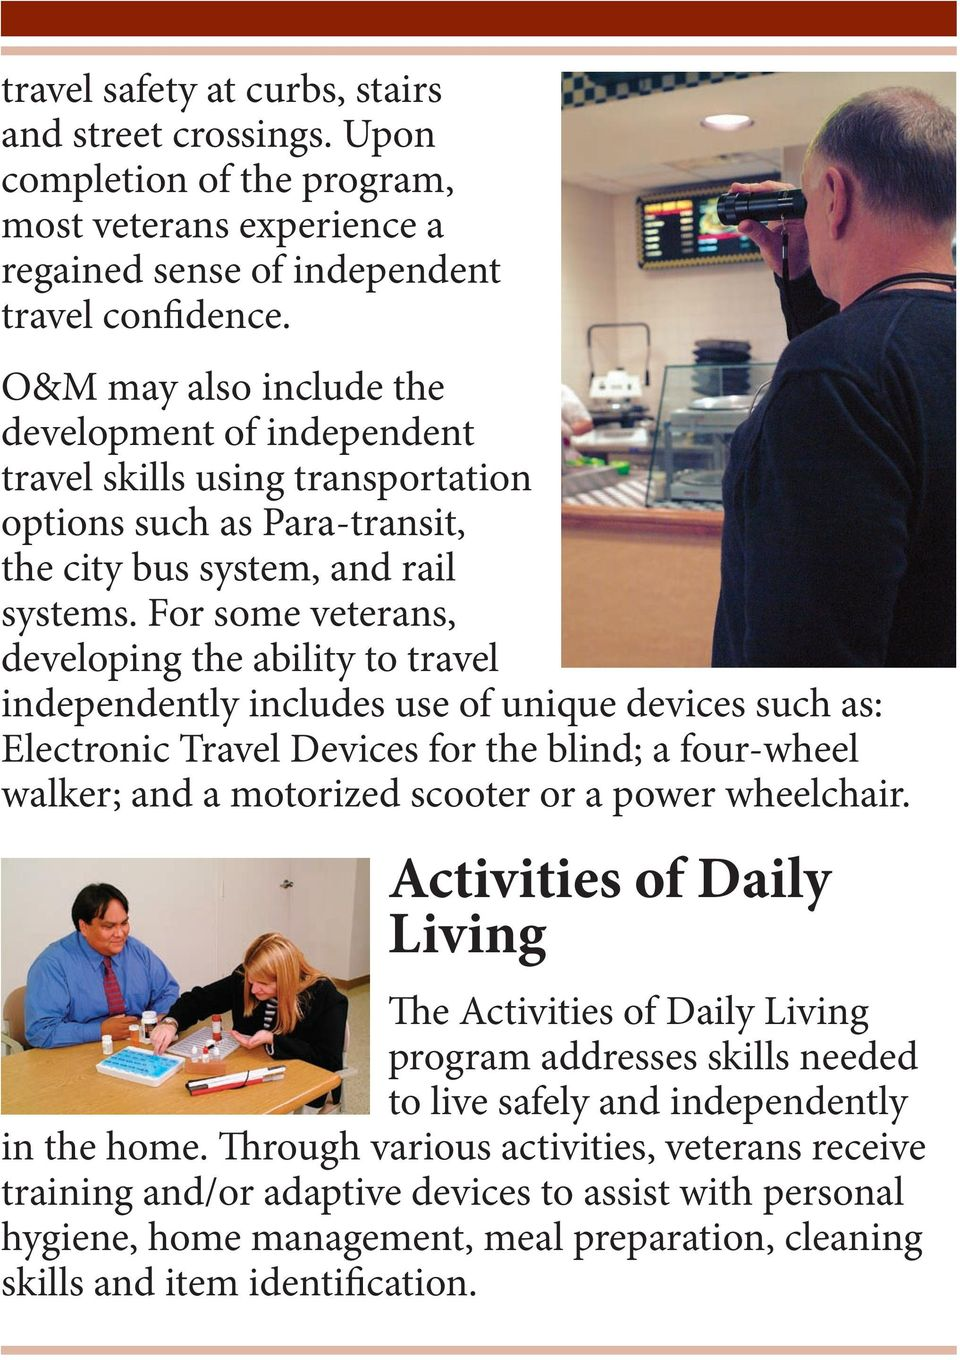 For some veterans, developing the ability to travel independently includes use of unique devices such as: Electronic Travel Devices for the blind; a four-wheel walker; and a motorized scooter or a